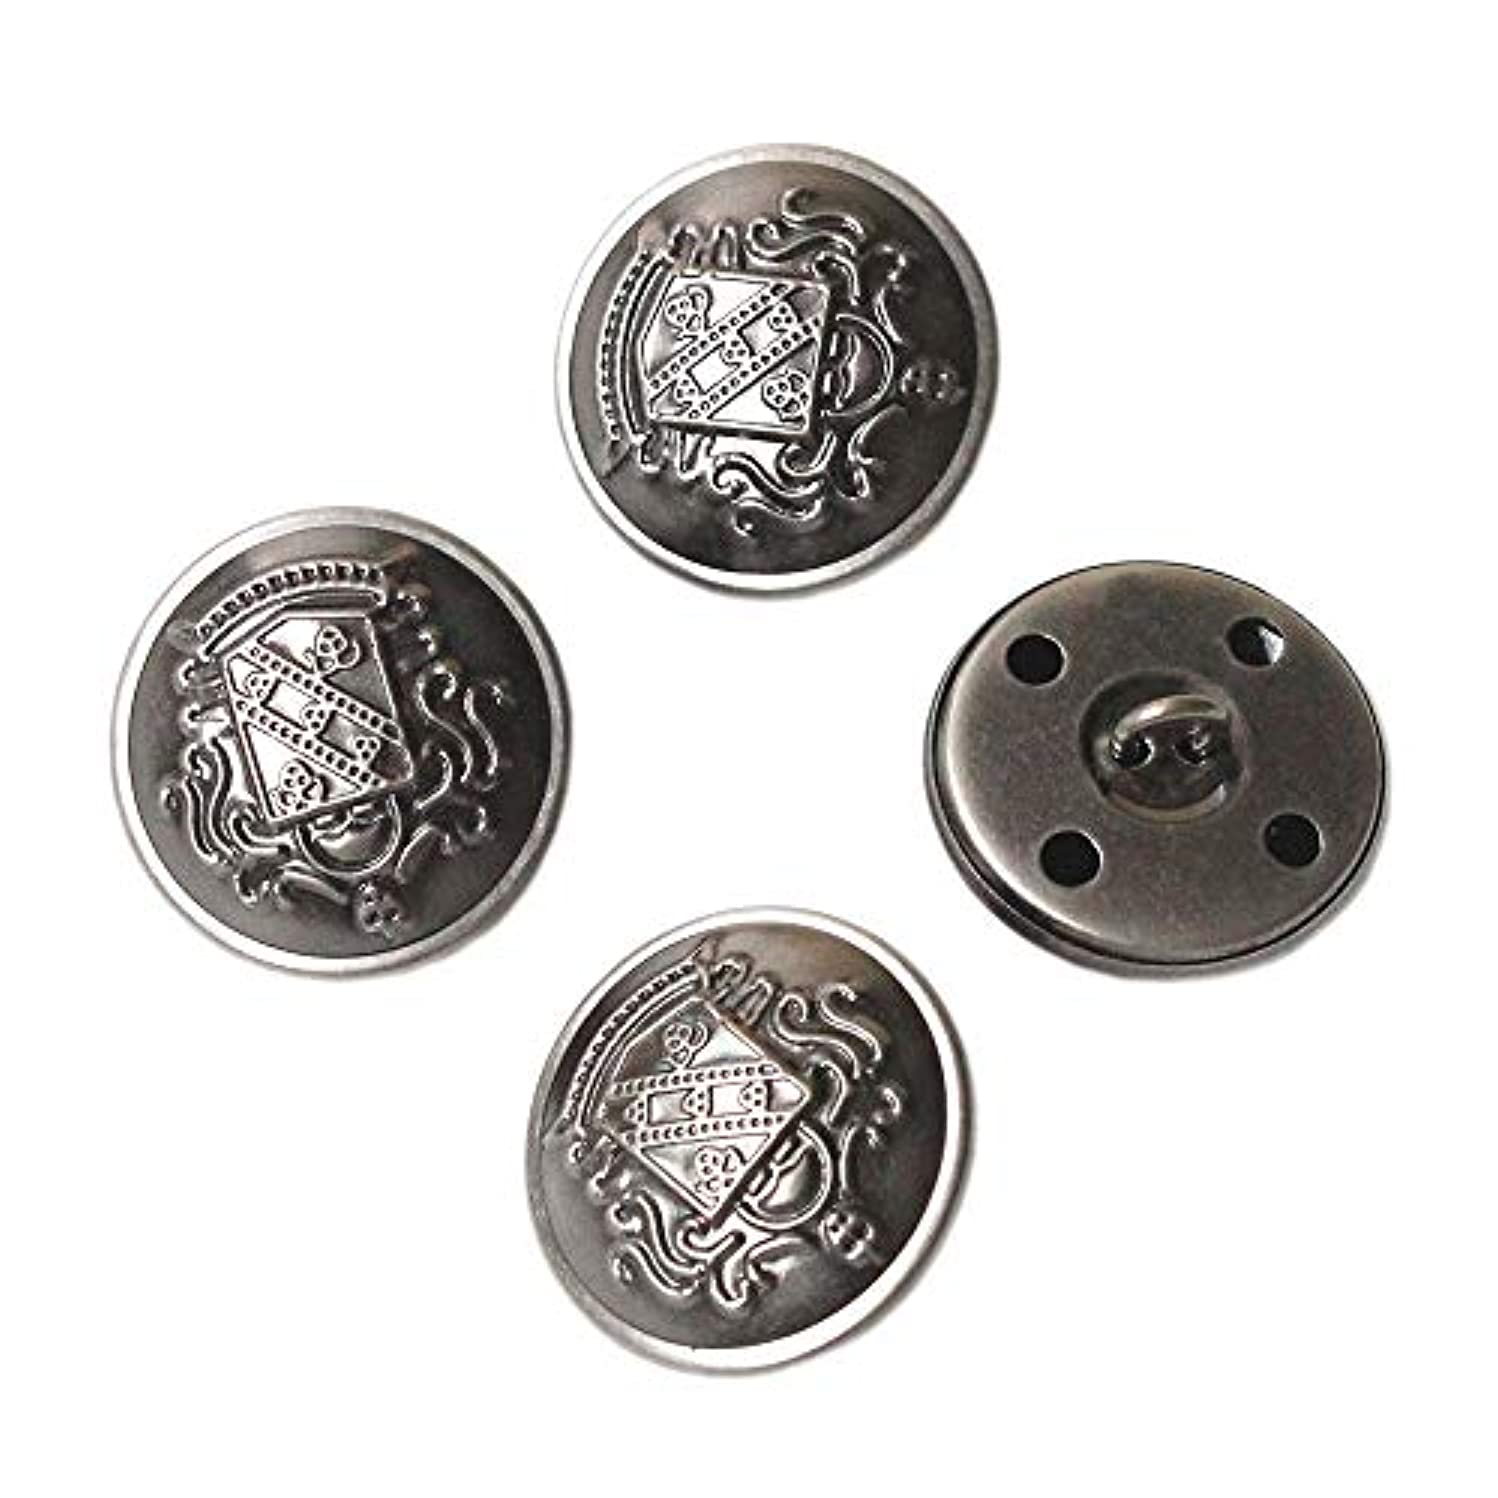 YaHoGa 10PCS 1 Inch (25mm) Antique Metal Buttons with Shank for Blazers,Suits,Jackets (Antique Silver)